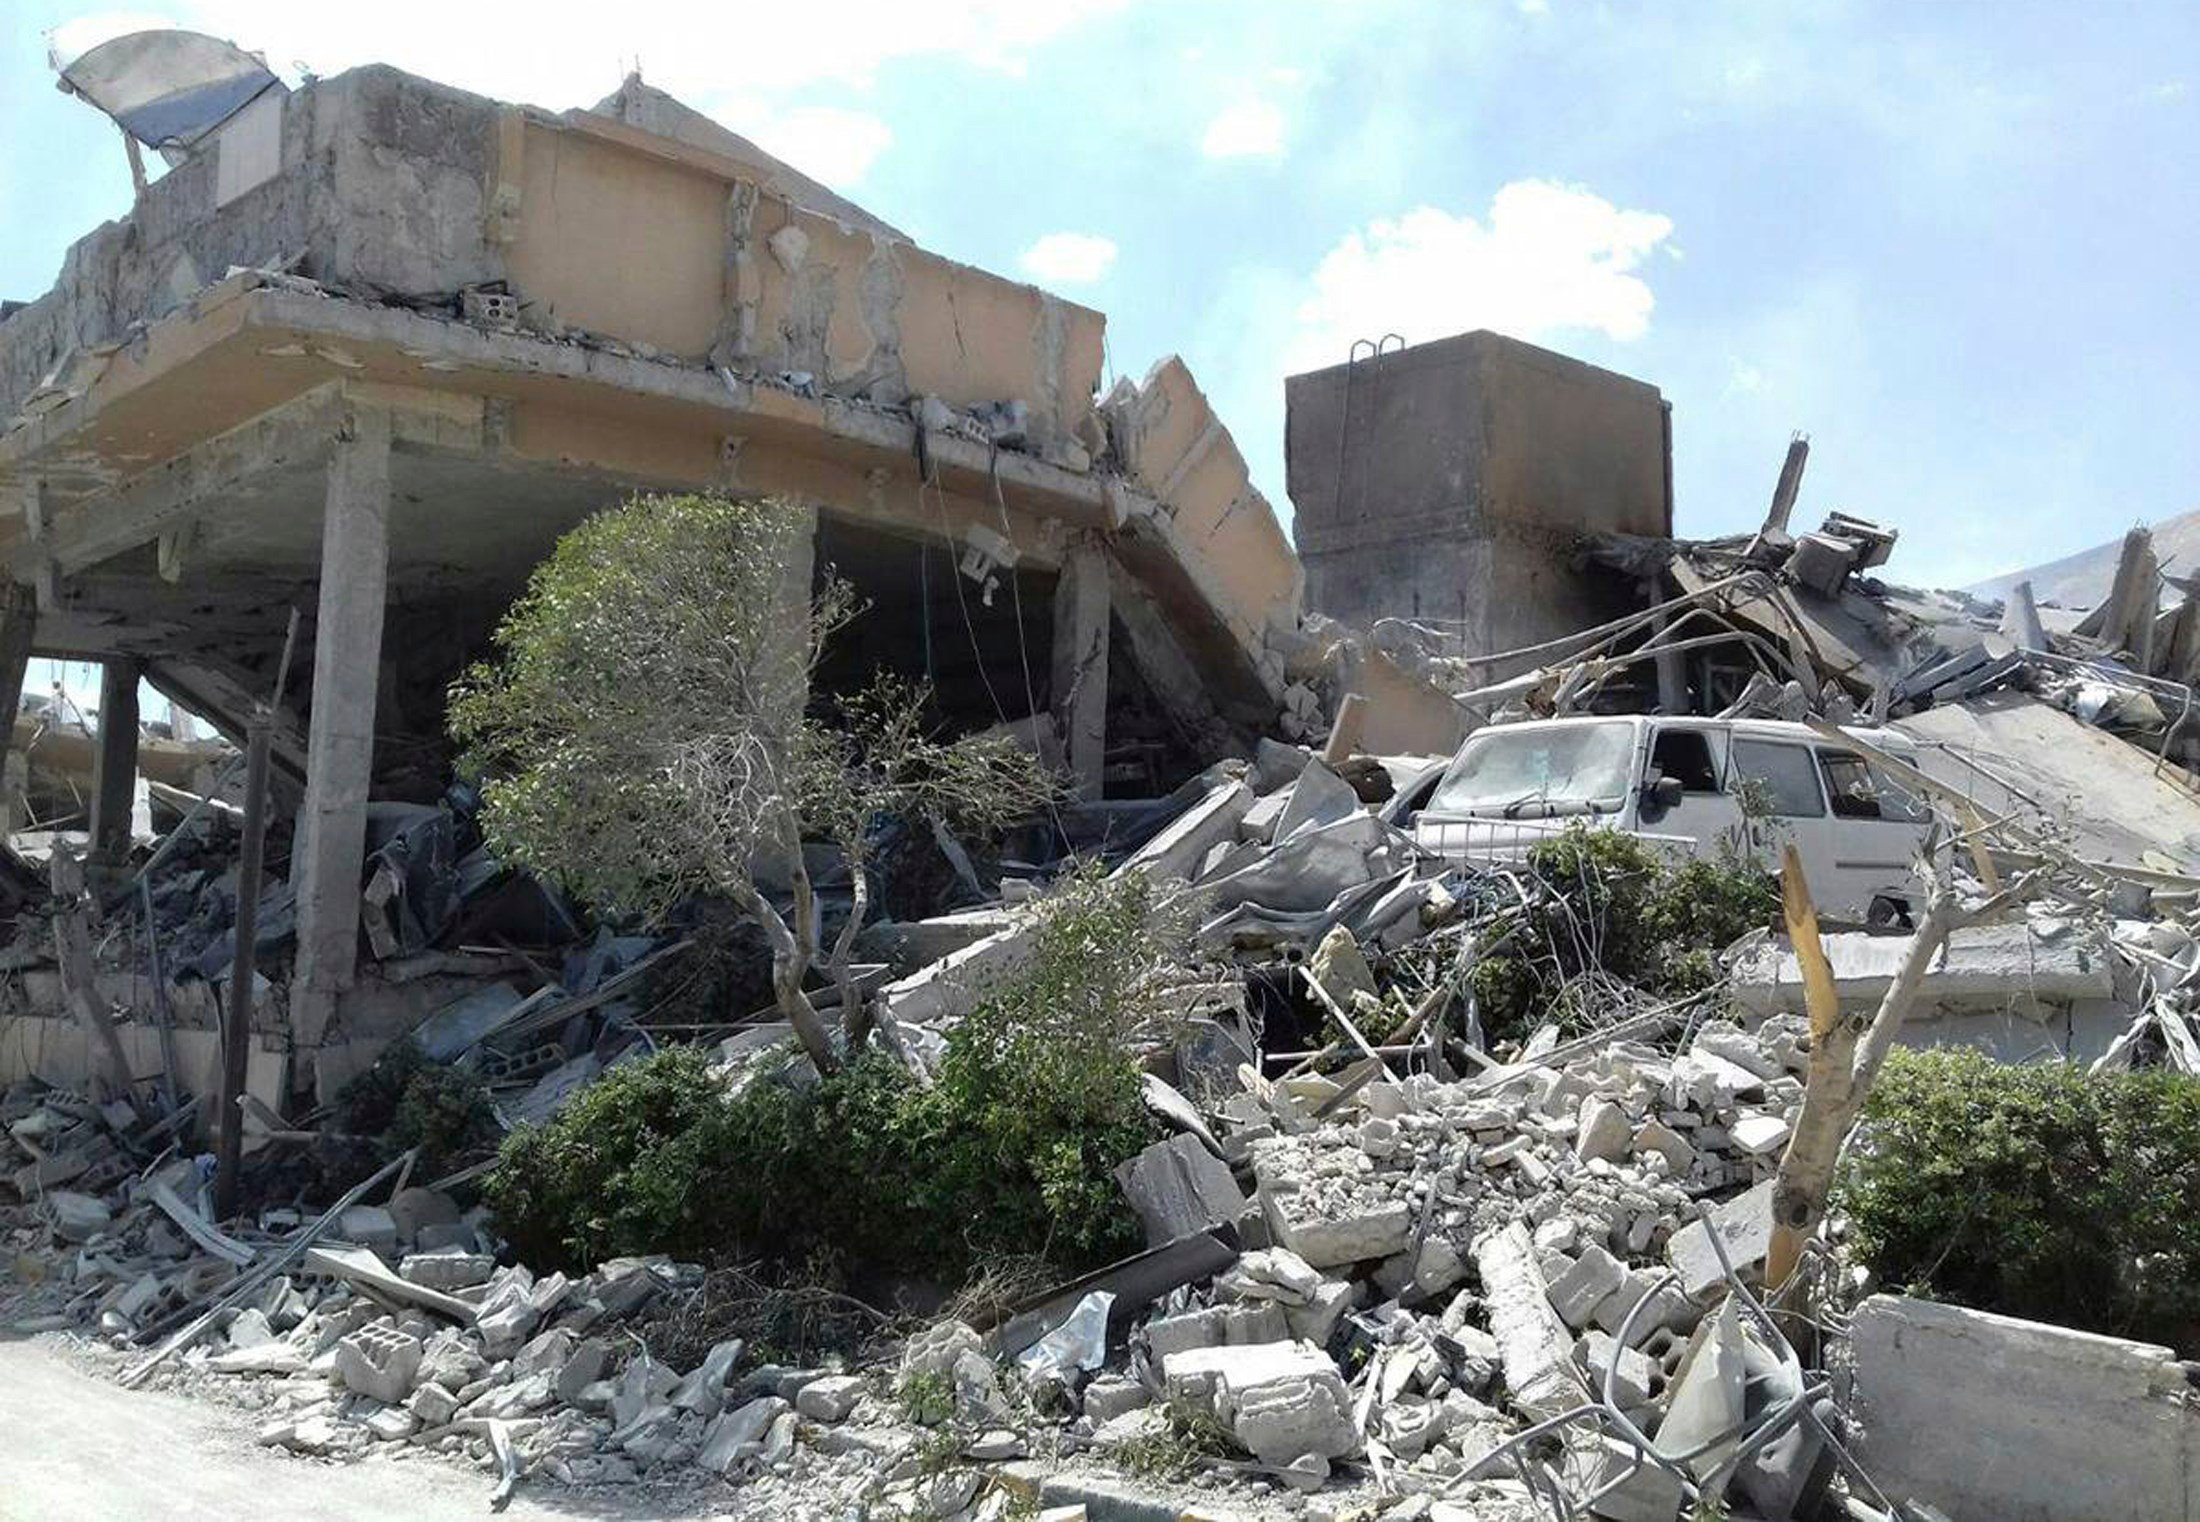 In this photo released by the Syrian news agency SANA, shows the damage of the Syrian Scientific Research Center which was attacked by U.S., British and French military strikes to punish President Bashar Assad for suspected chemical attacks. (SANA via AP)